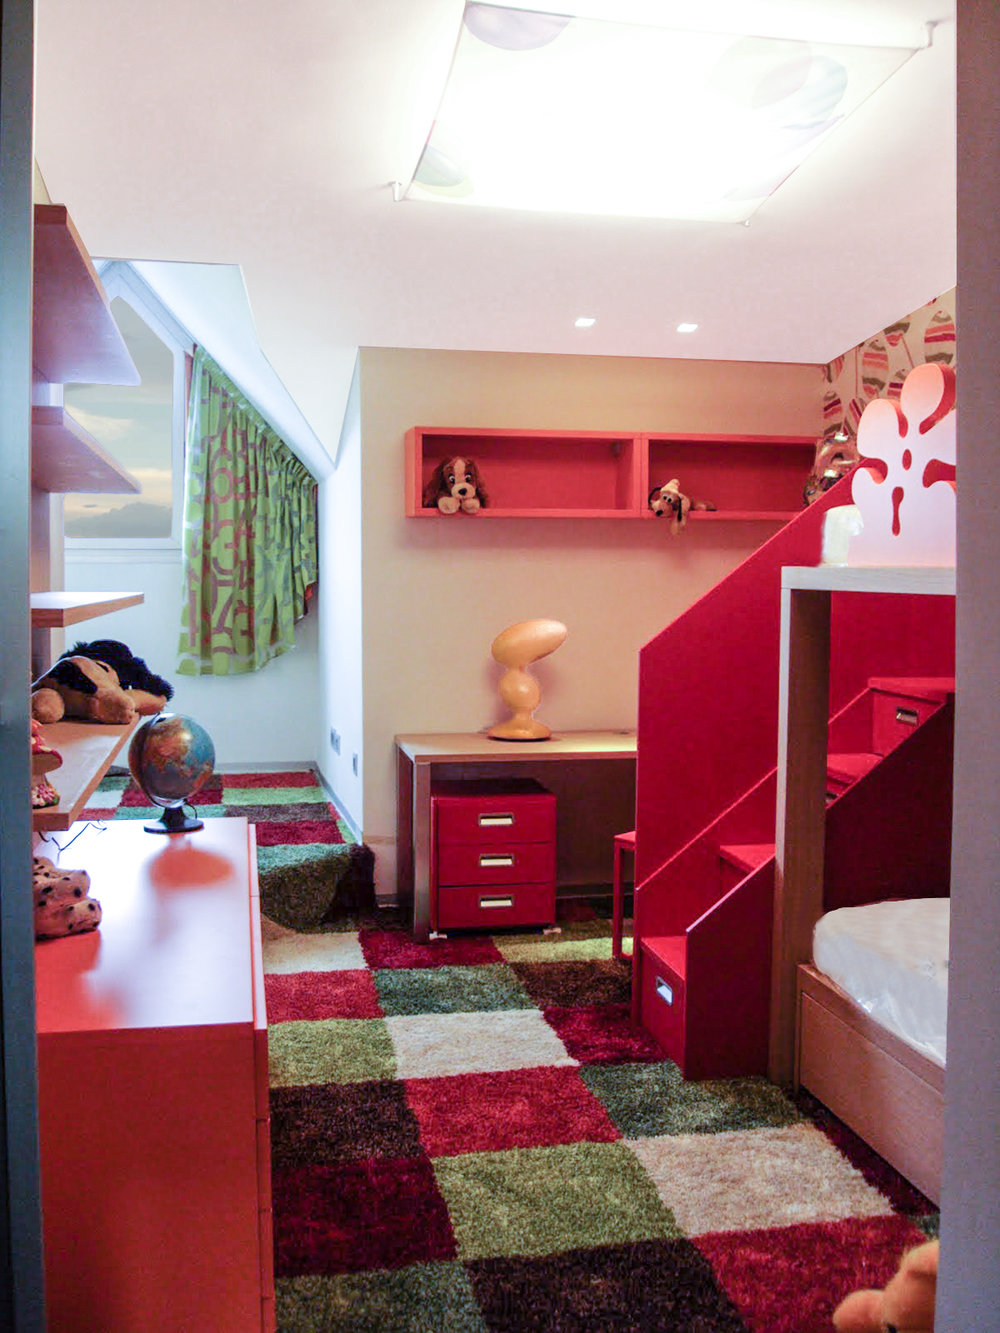 kids bedroom with bunk bed and colorful square carpet